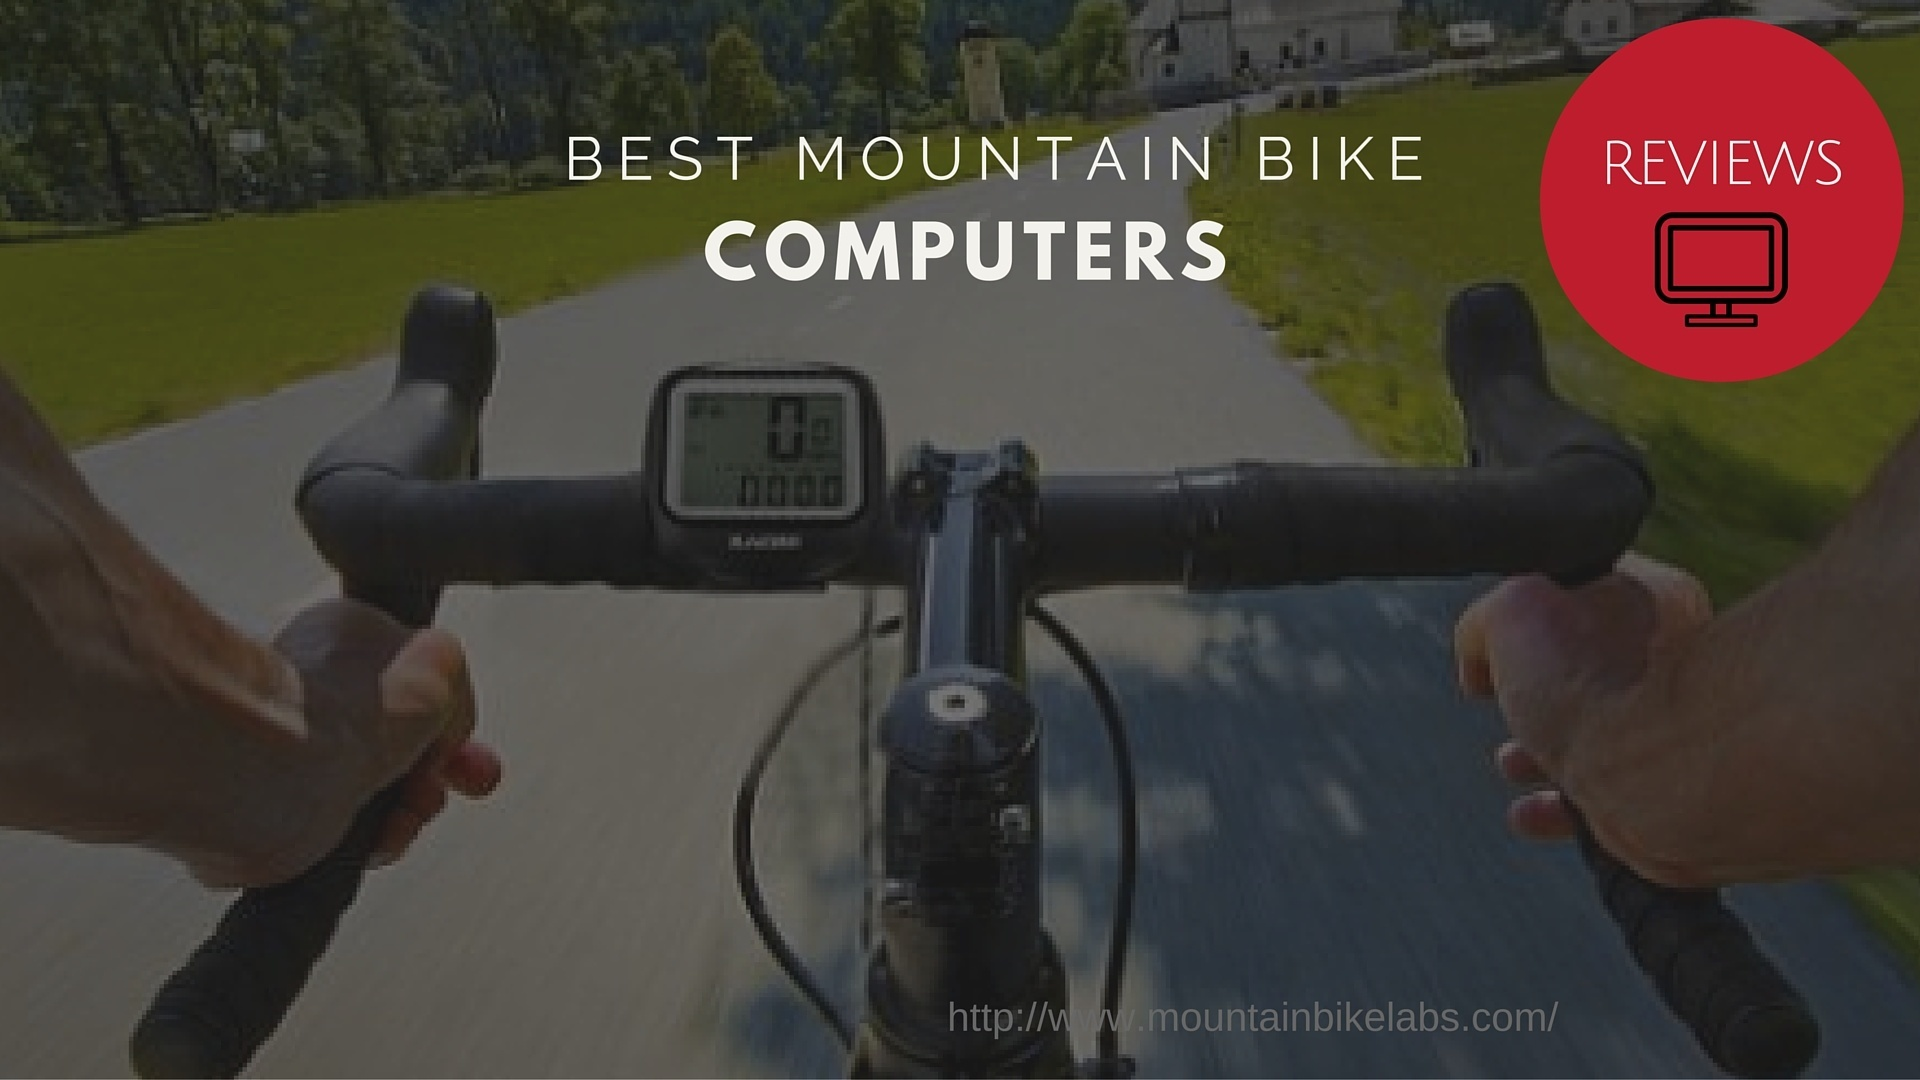 bestmountainbiksecomputers